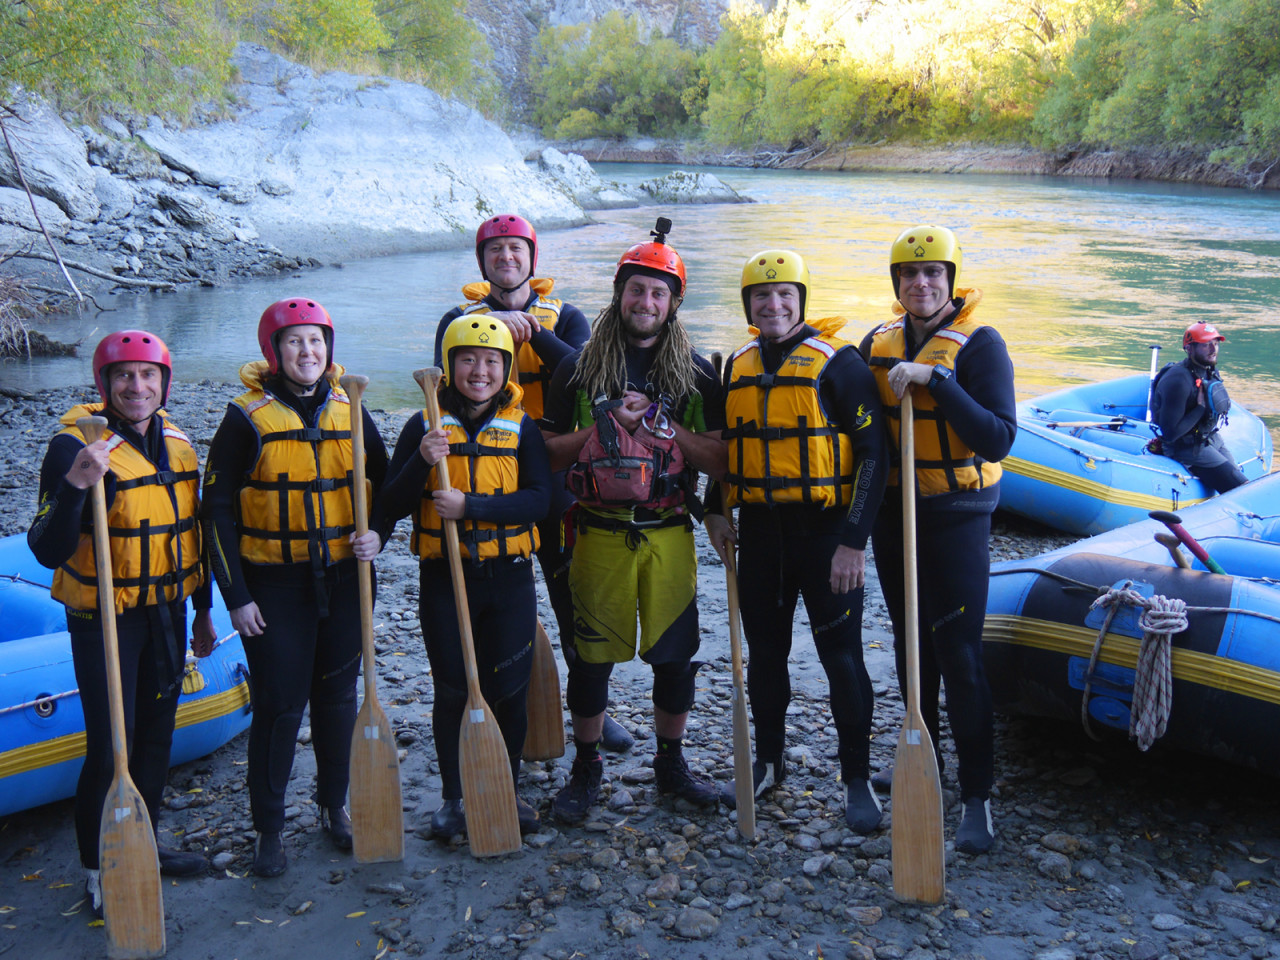 So this is me (far left) with my five rafting buddies and our guide Martijn.